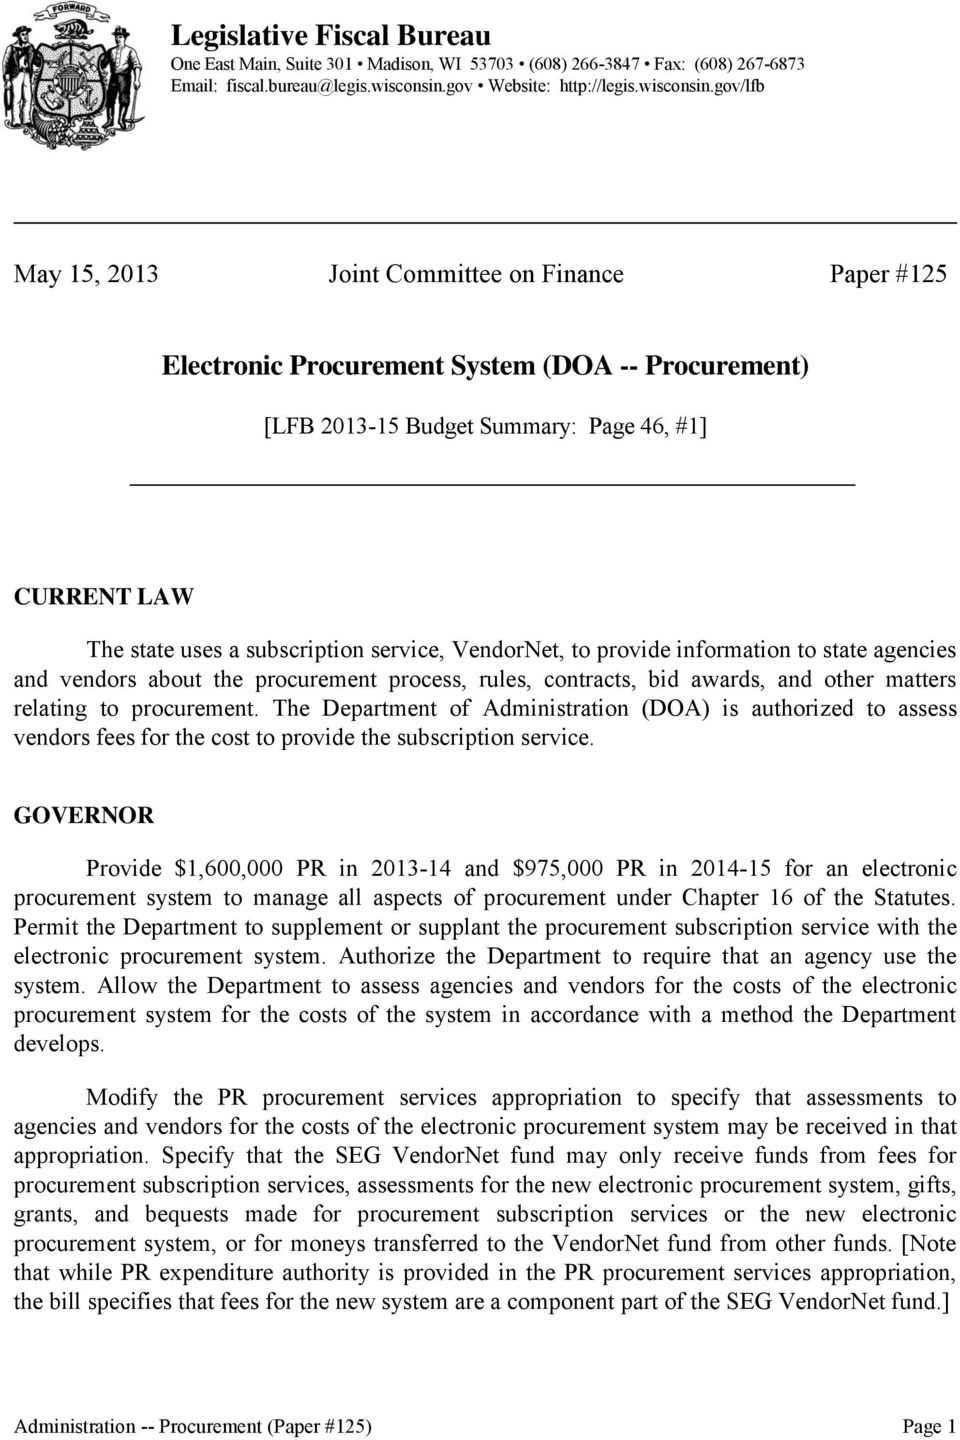 gov/lfb May 15, 2013 Joint Committee on Finance Paper #125 Electronic Procurement System (DOA -- Procurement) [LFB 2013-15 Budget Summary: Page 46, #1] CURRENT LAW The state uses a subscription